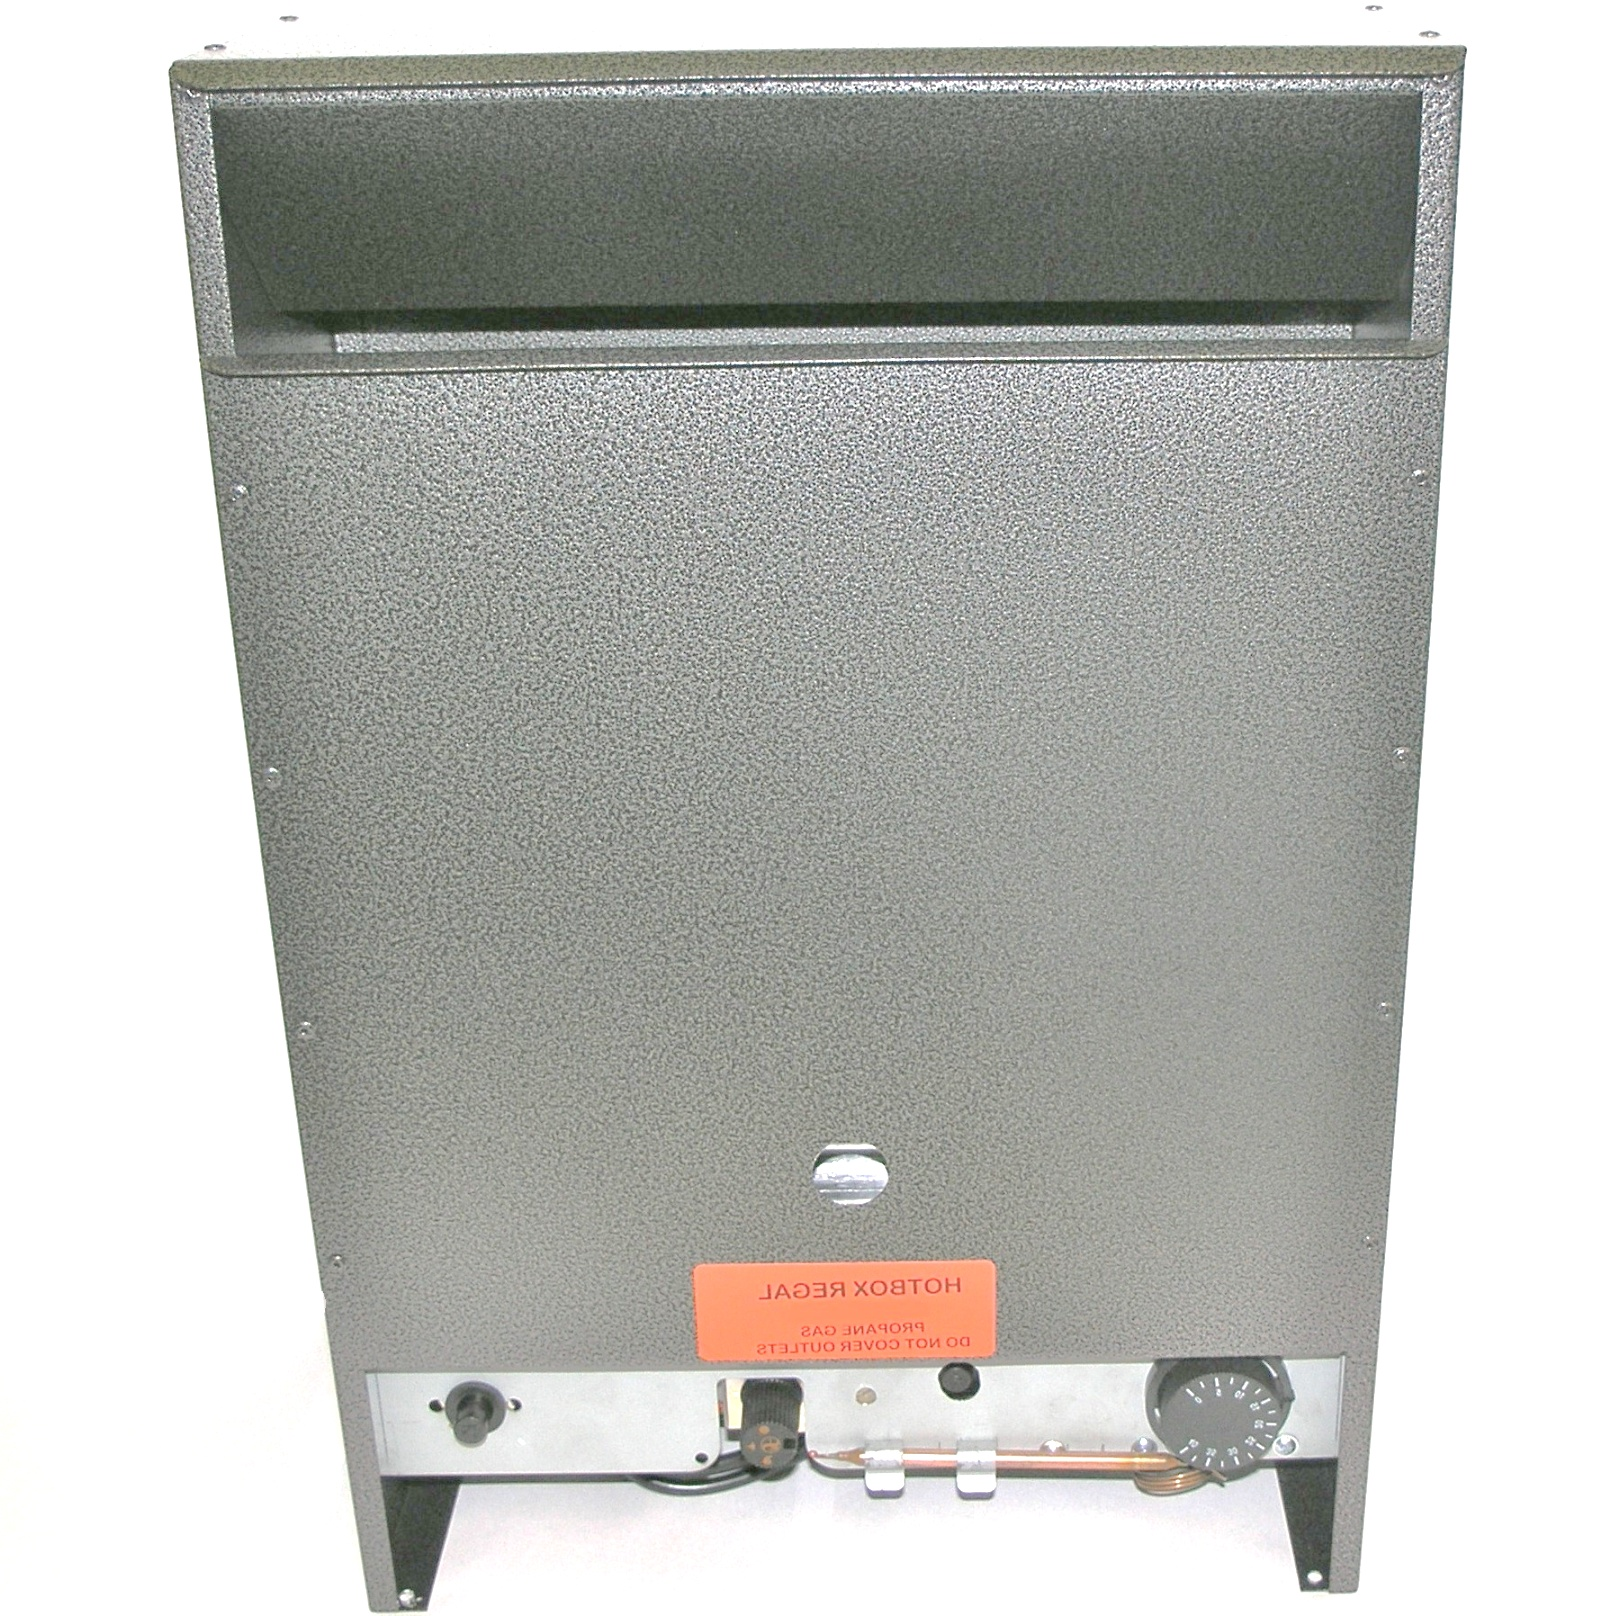 small greenhouse heater | Regal Gold 4kW Propane Greenhouse Heater - 8208399 - £224.99 ..